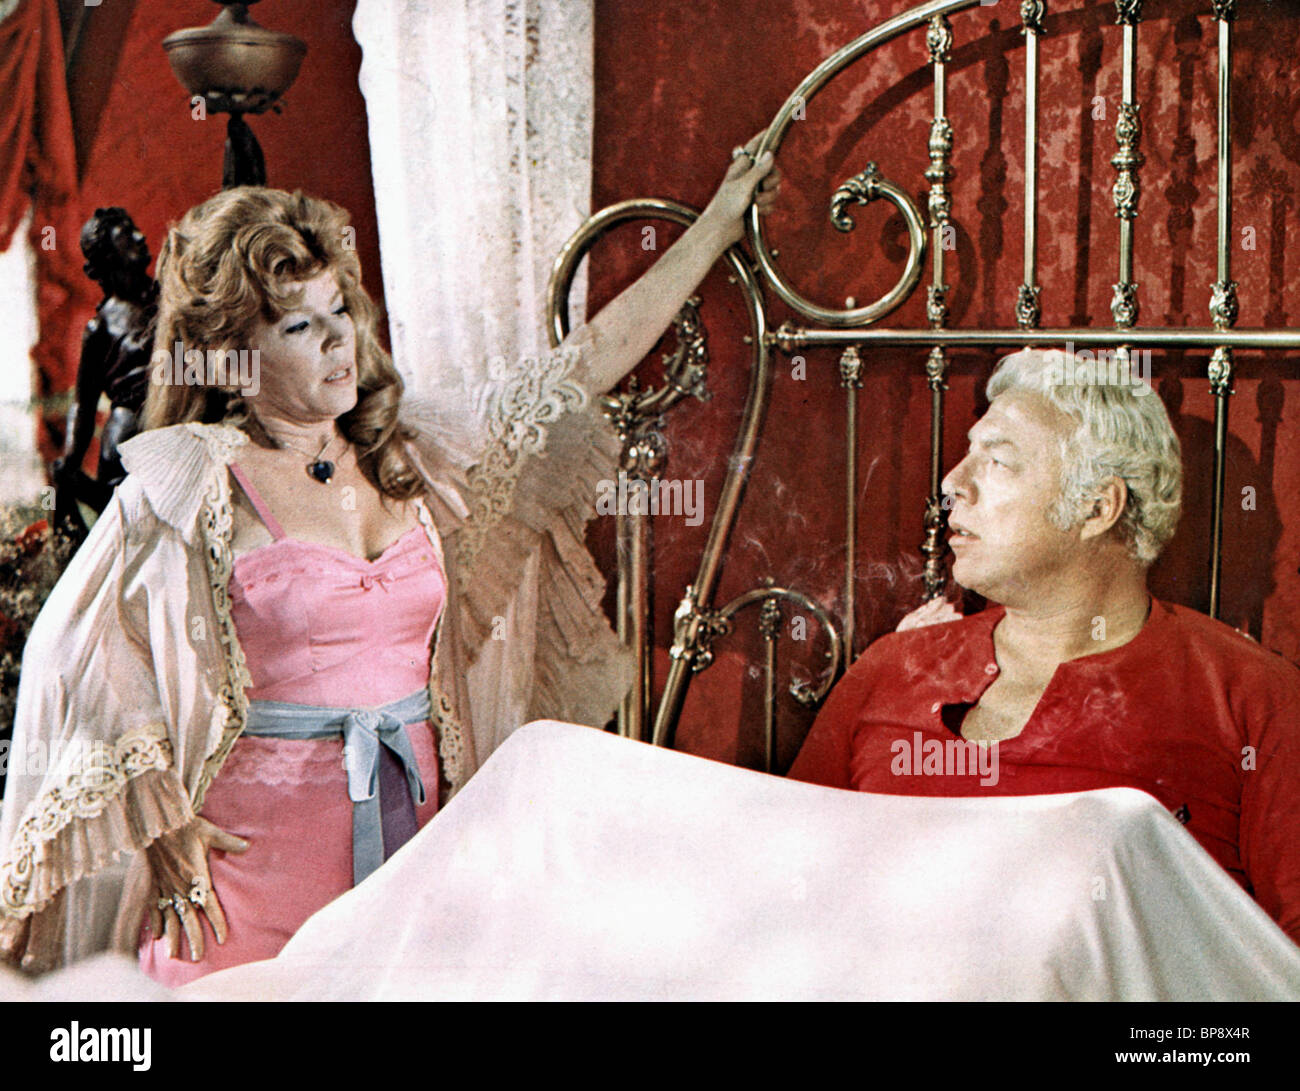 ANNE JACKSON & GEORGE KENNEDY DIRTY DINGUS MAGEE (1970) - Stock Image